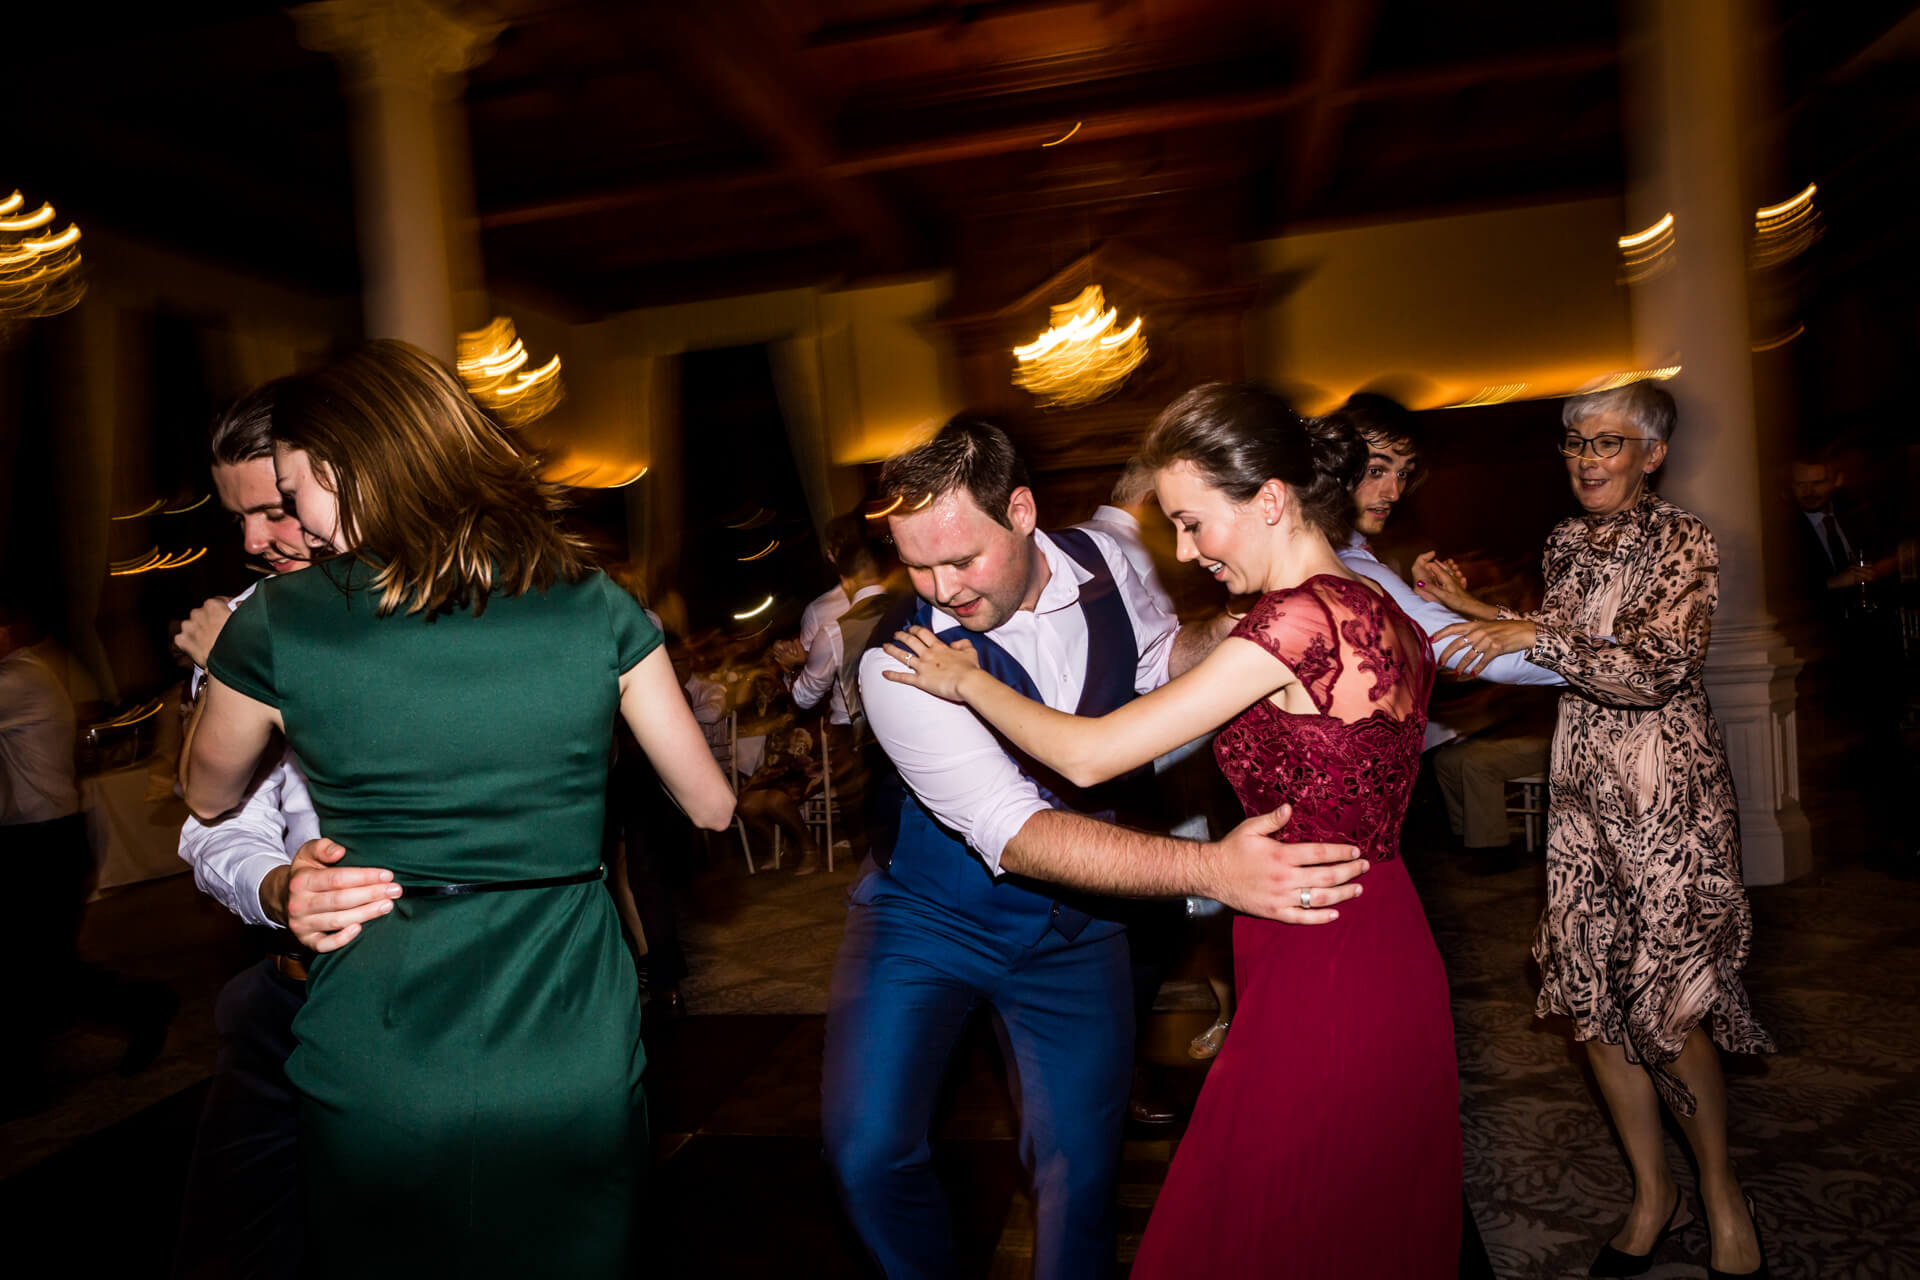 guests dancing in a circle